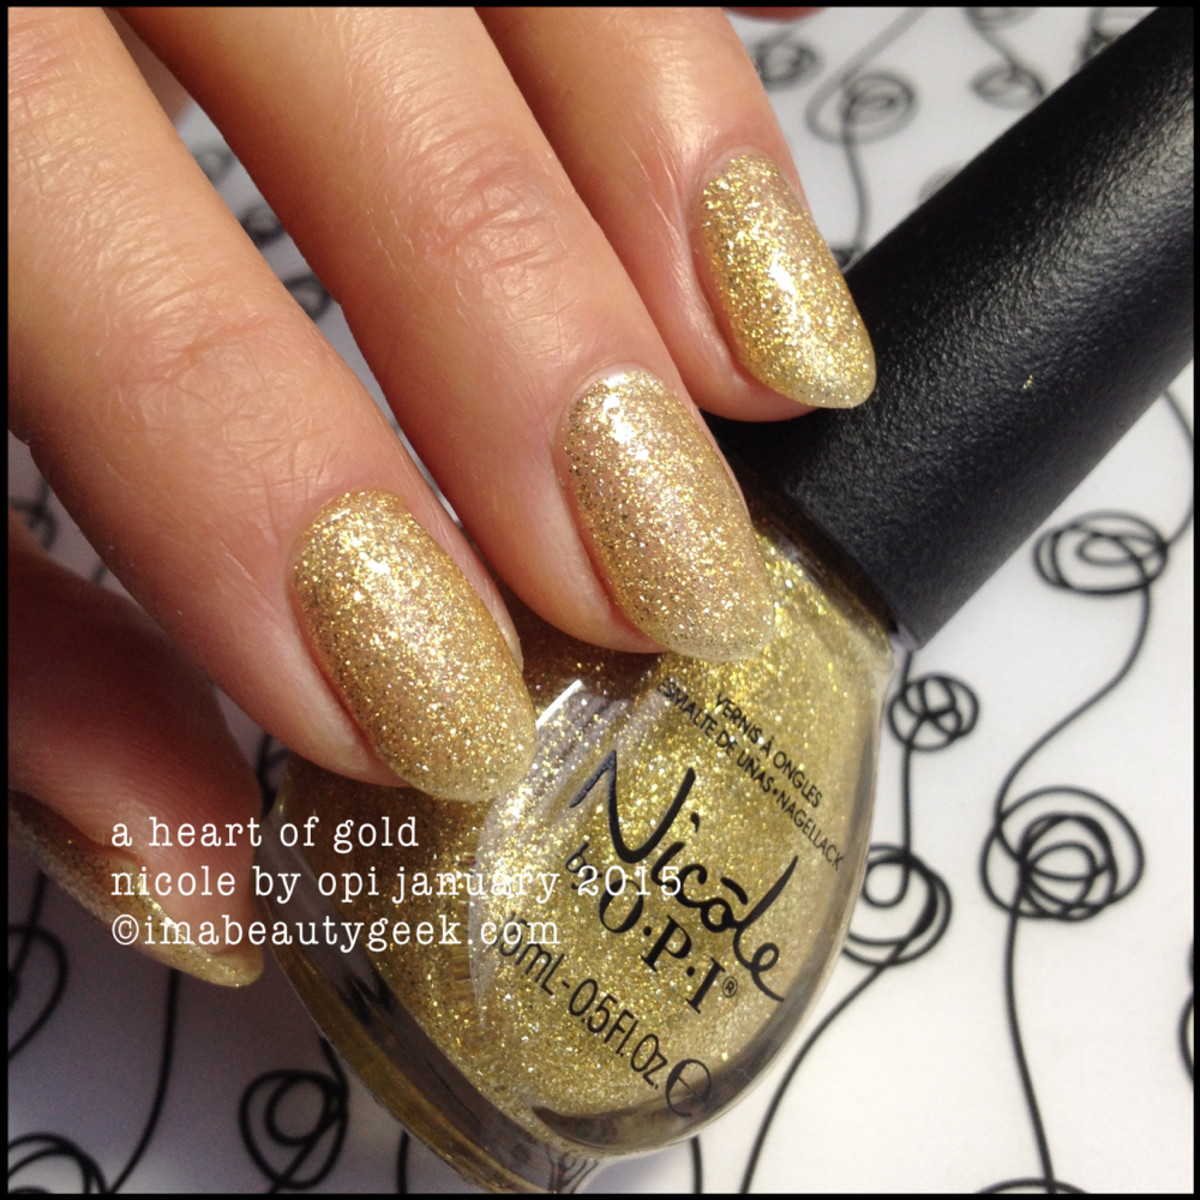 Nicole by OPI A Heart of Gold